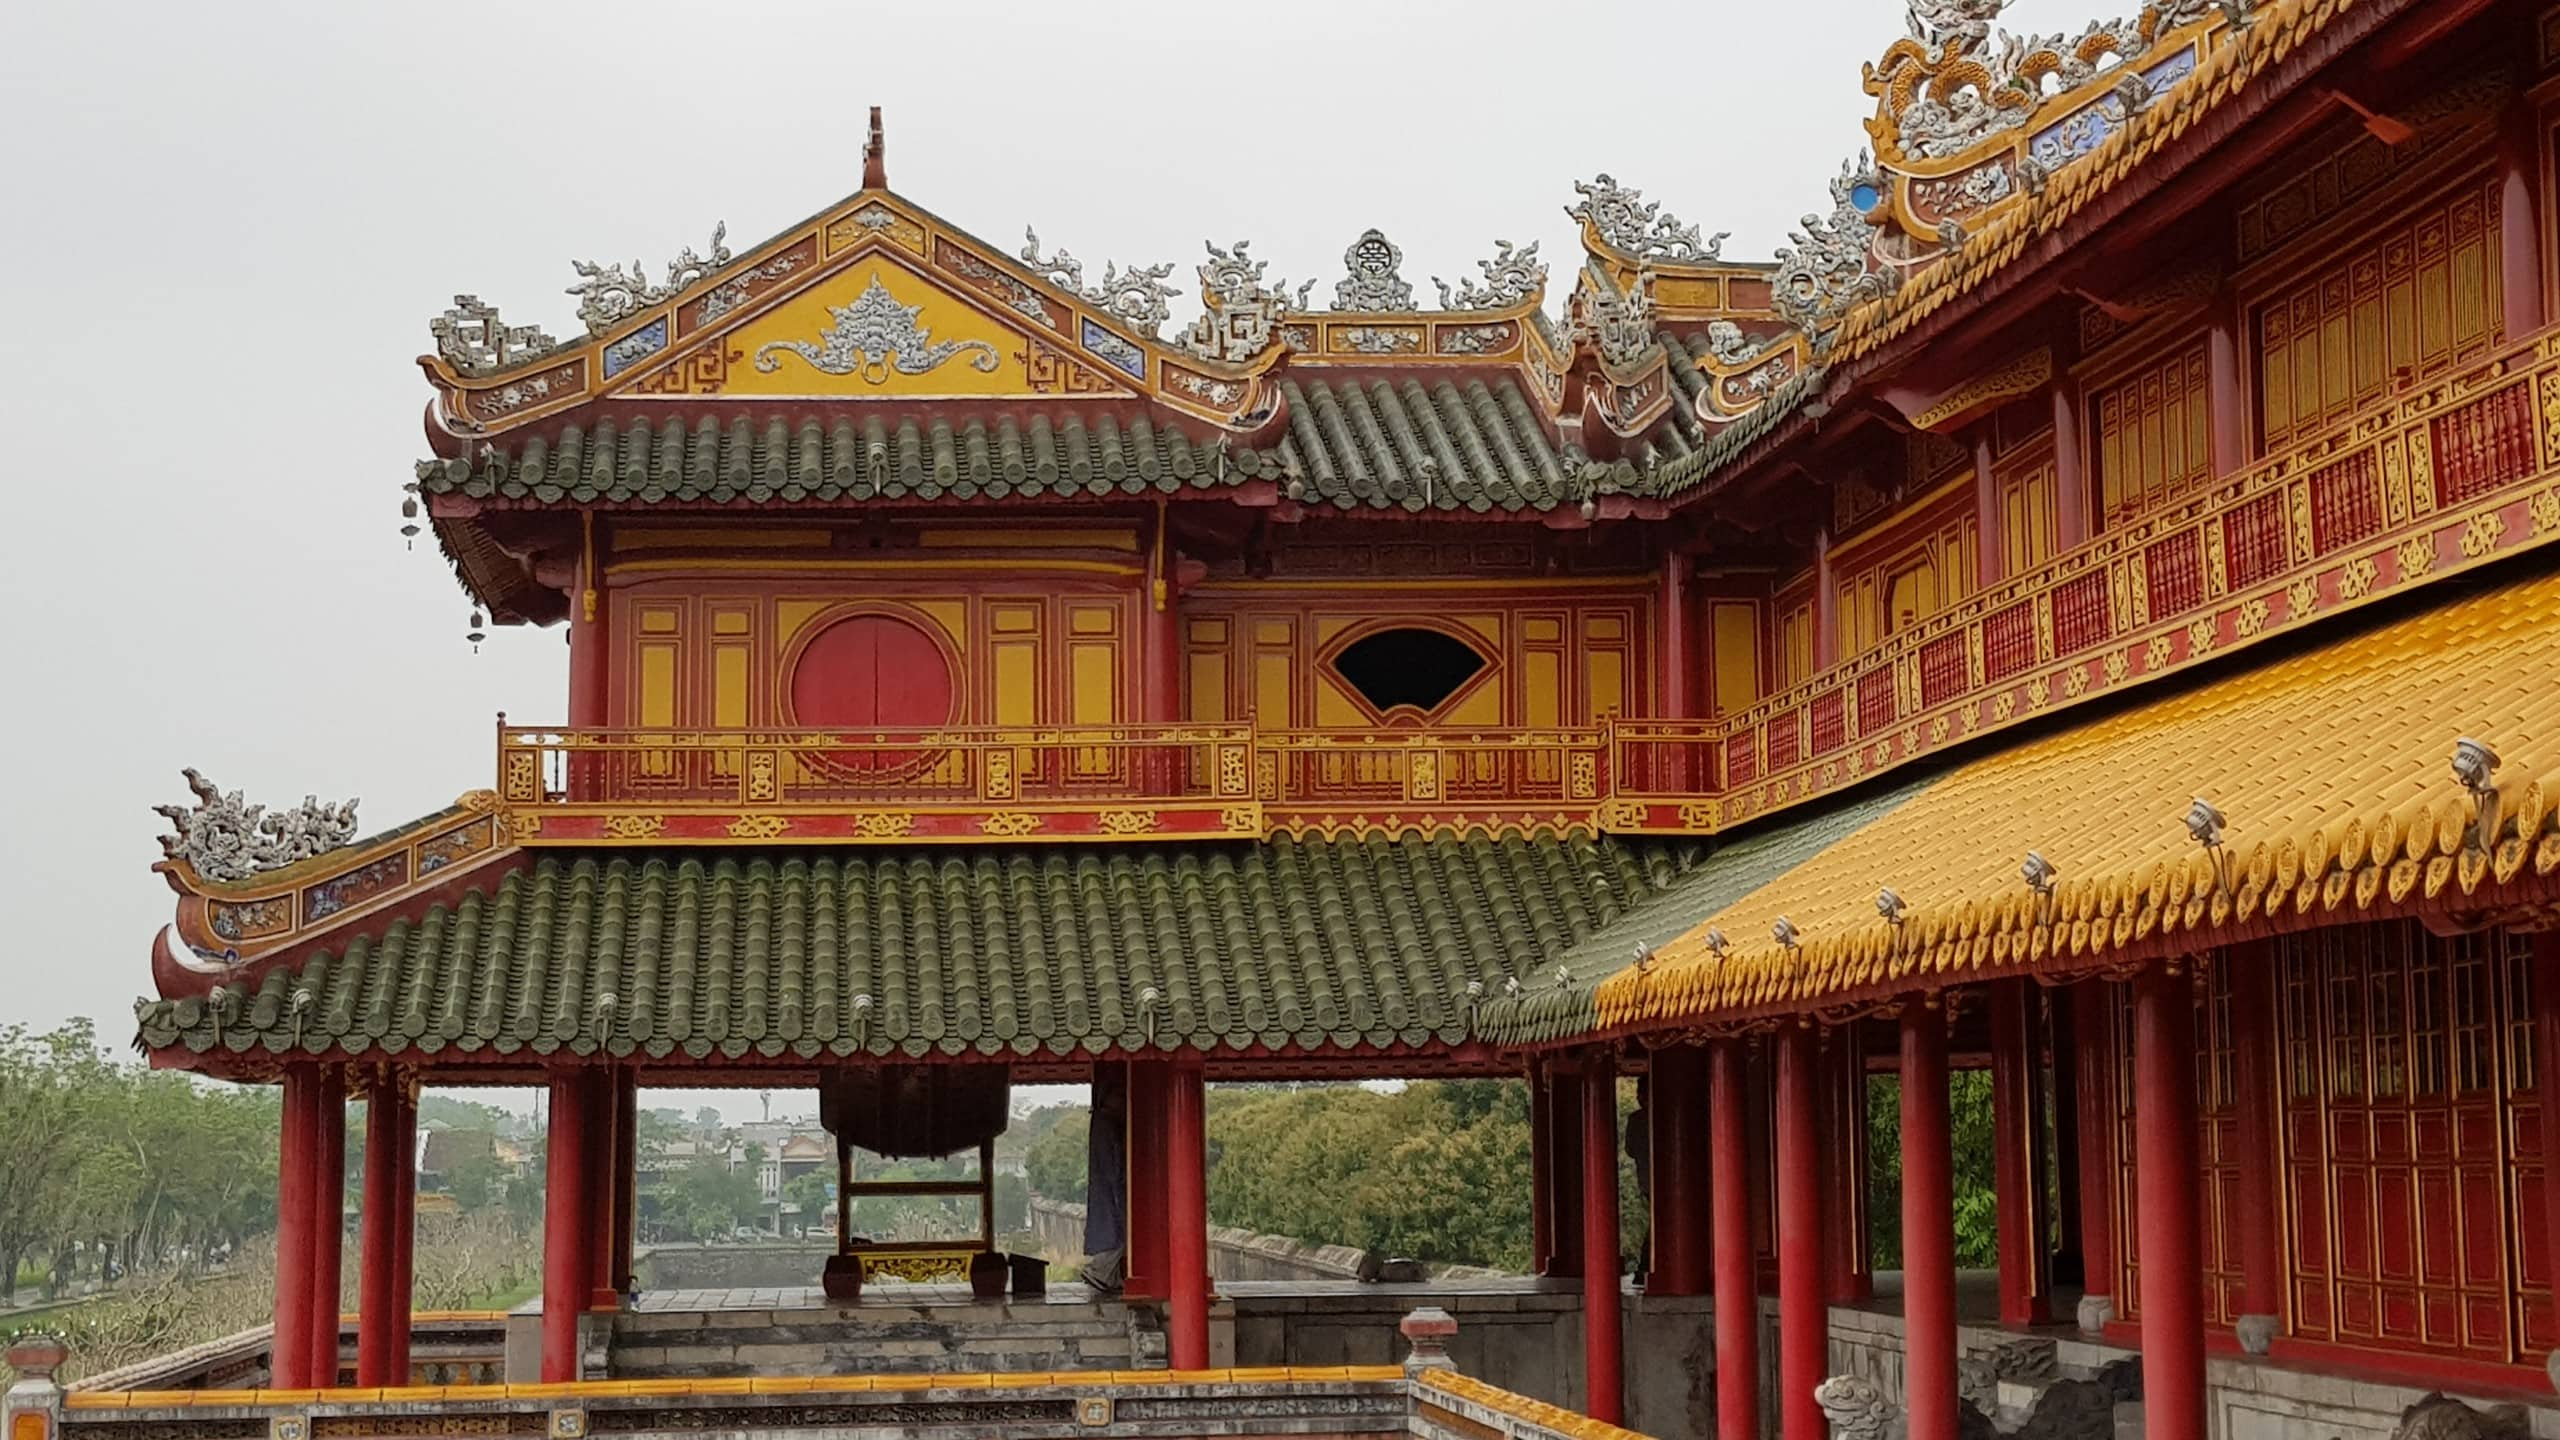 The Noon Gate Hue